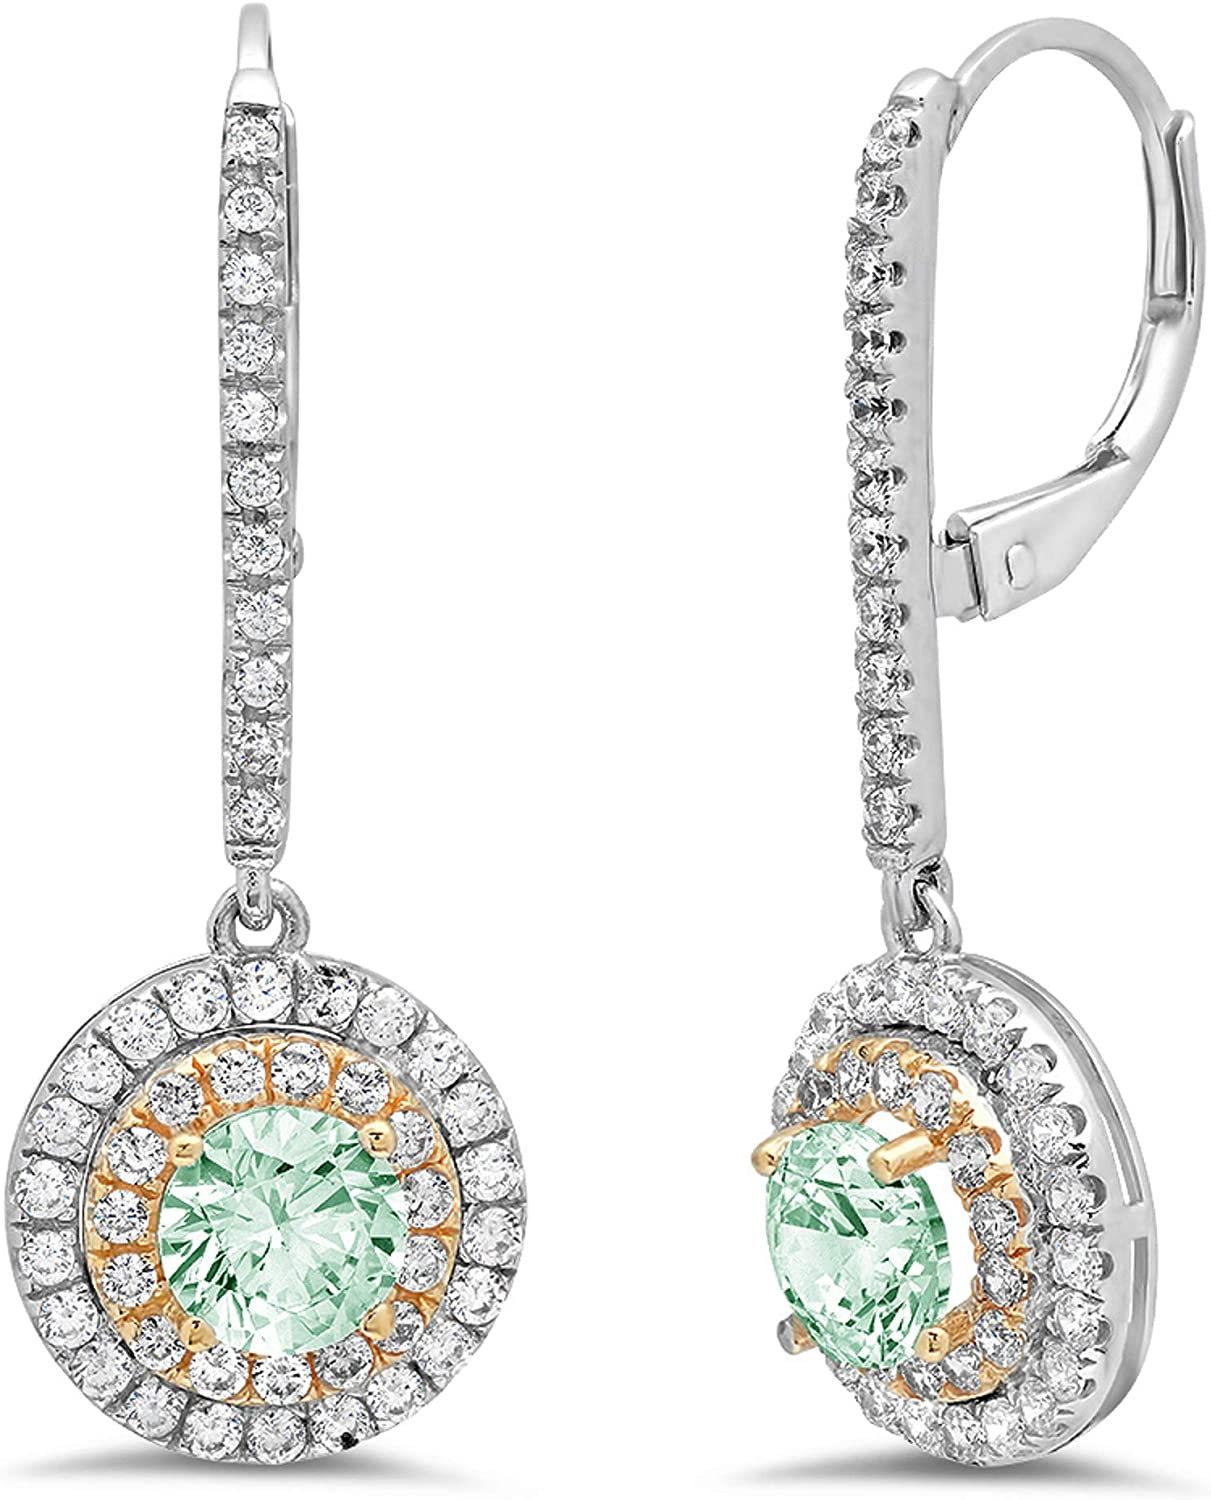 2.42ct Round Cut ideal VVS1 Conflict Free Gemstone Double Halo Solitaire Turquoise Green CZ Unisex Lever back Drop Dangle Earrings Solid 14k2 tone Gold